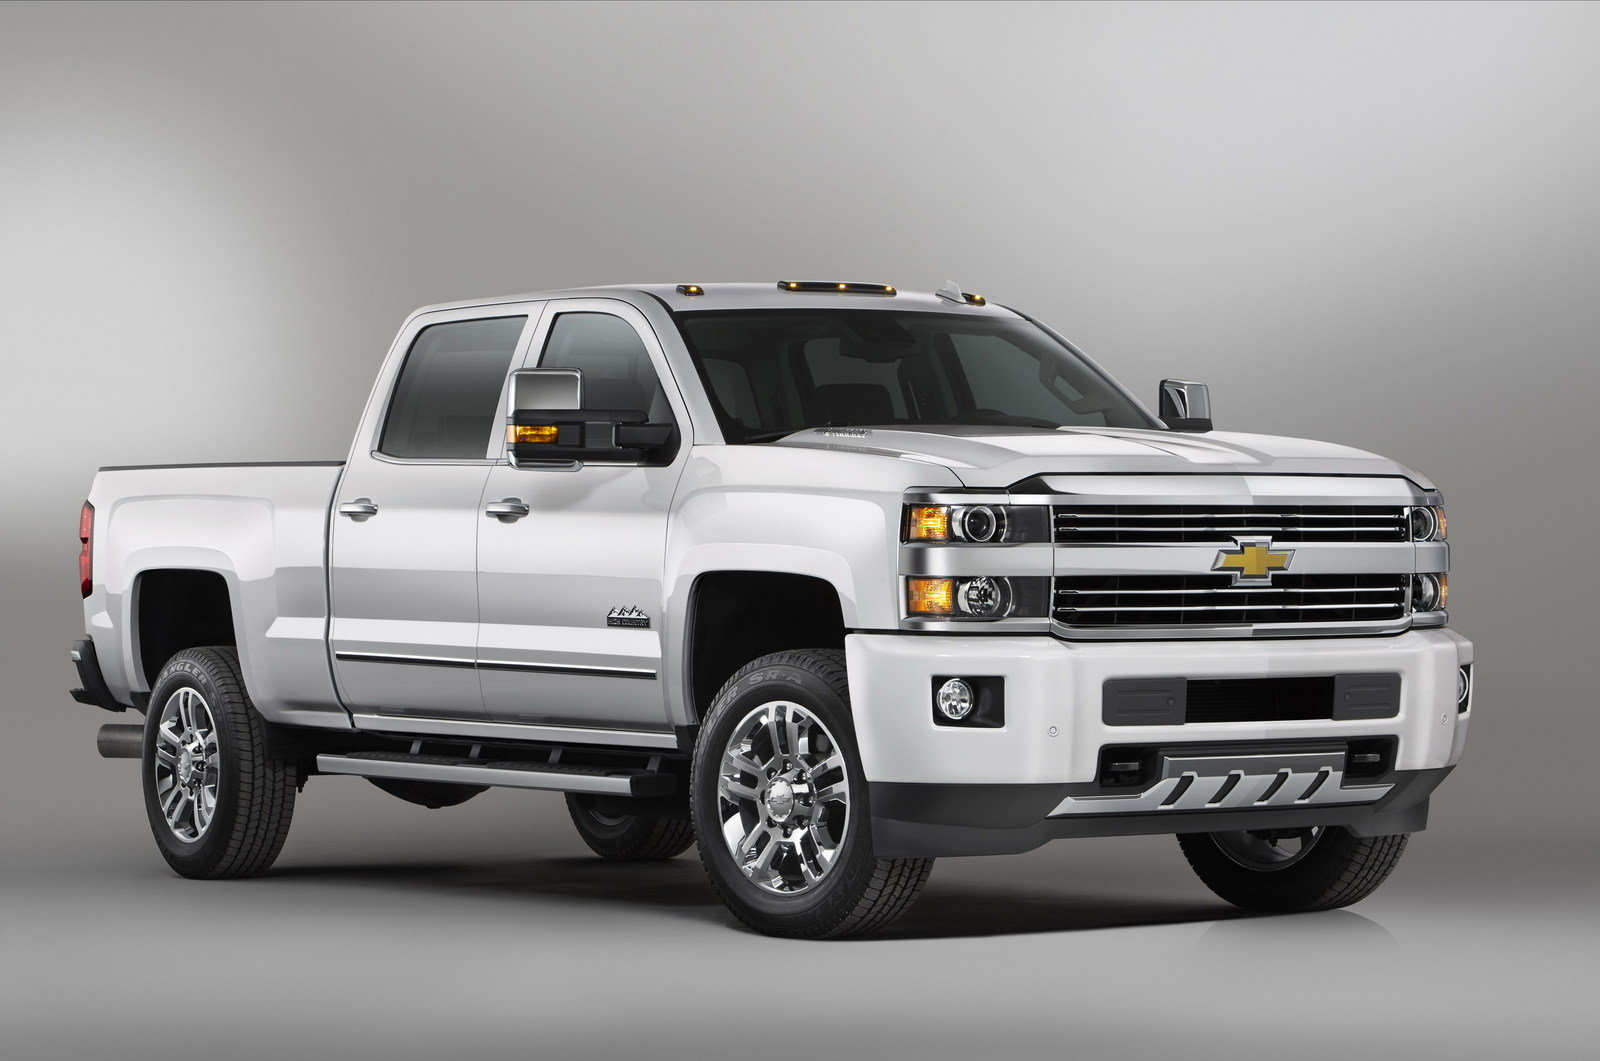 Silverado 2015 chevrolet silverado 1500 mpg : 2015 Chevrolet Silverado 2500HD High Country Review - Top Speed